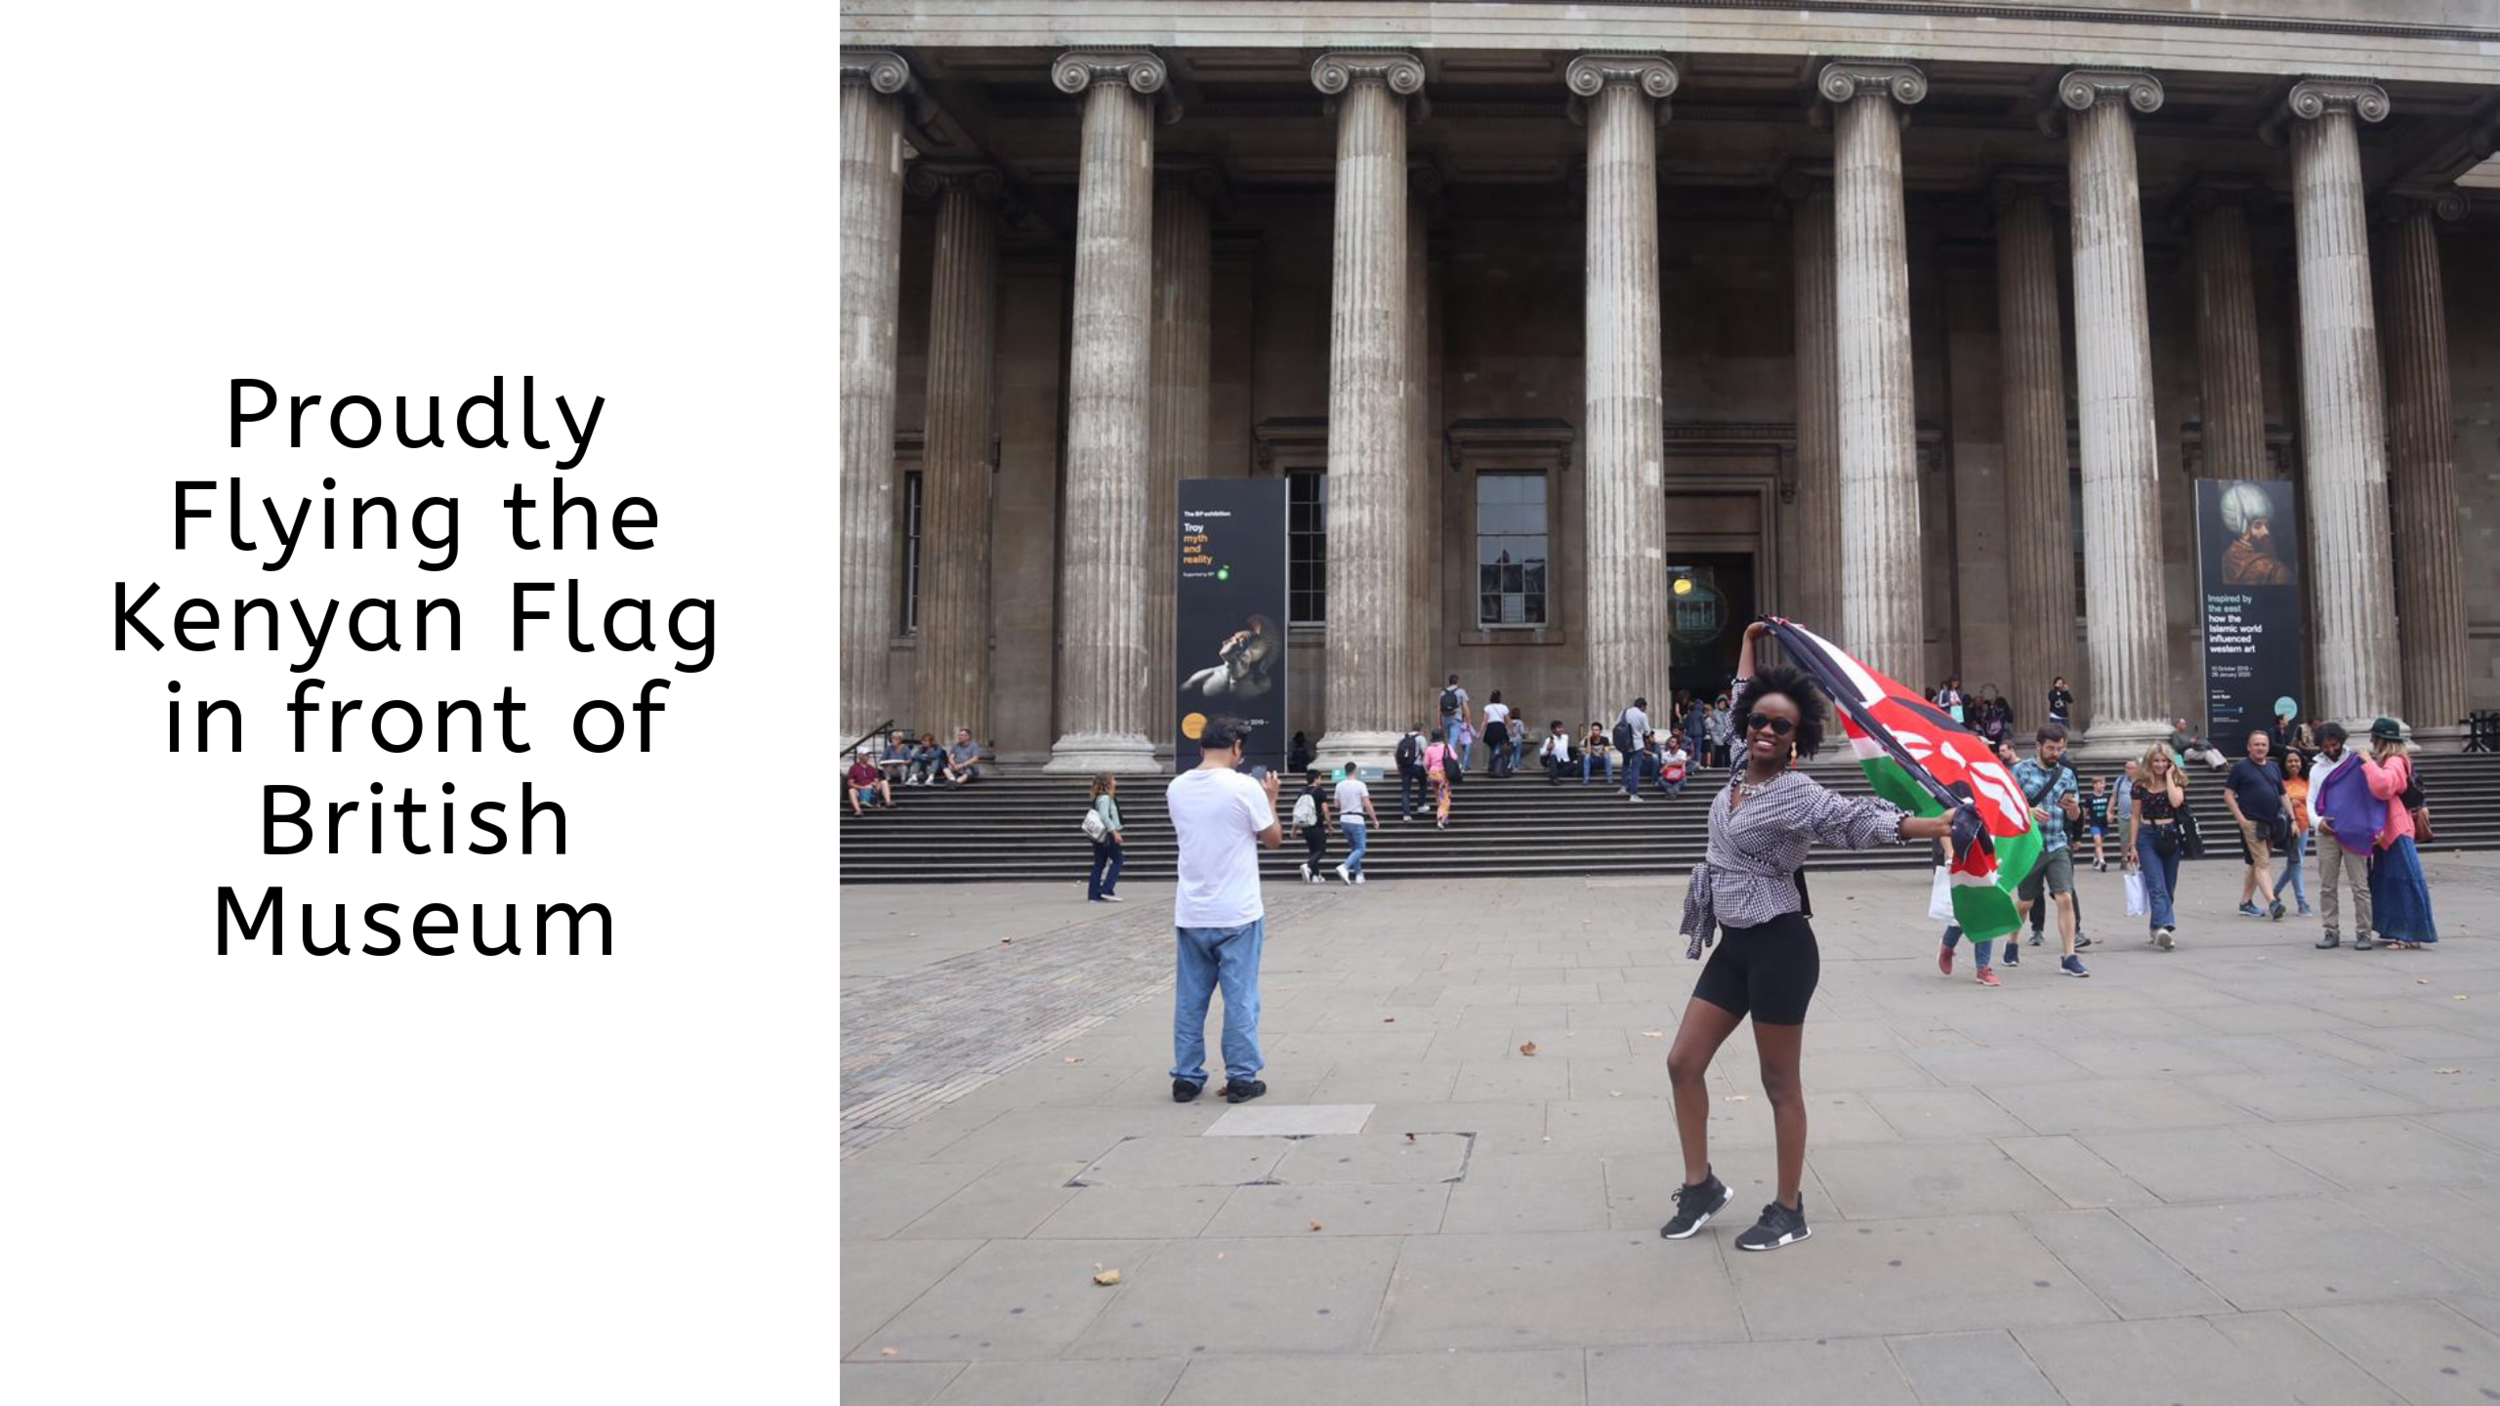 Flying the Kenyan Flag proudly infront of British Museum.png